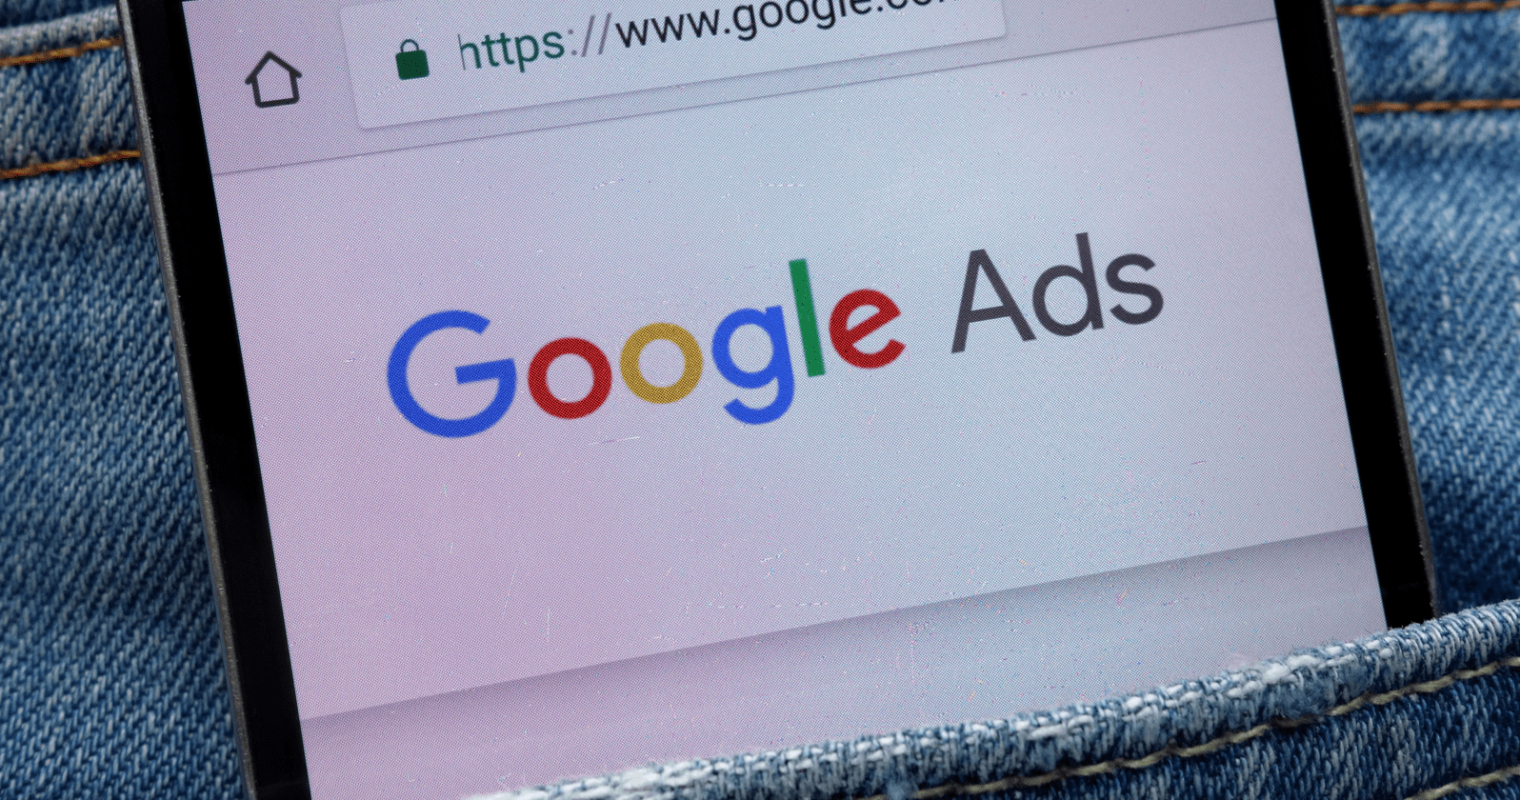 Google Ads Extends Parallel Tracking to Display & Video Campaigns